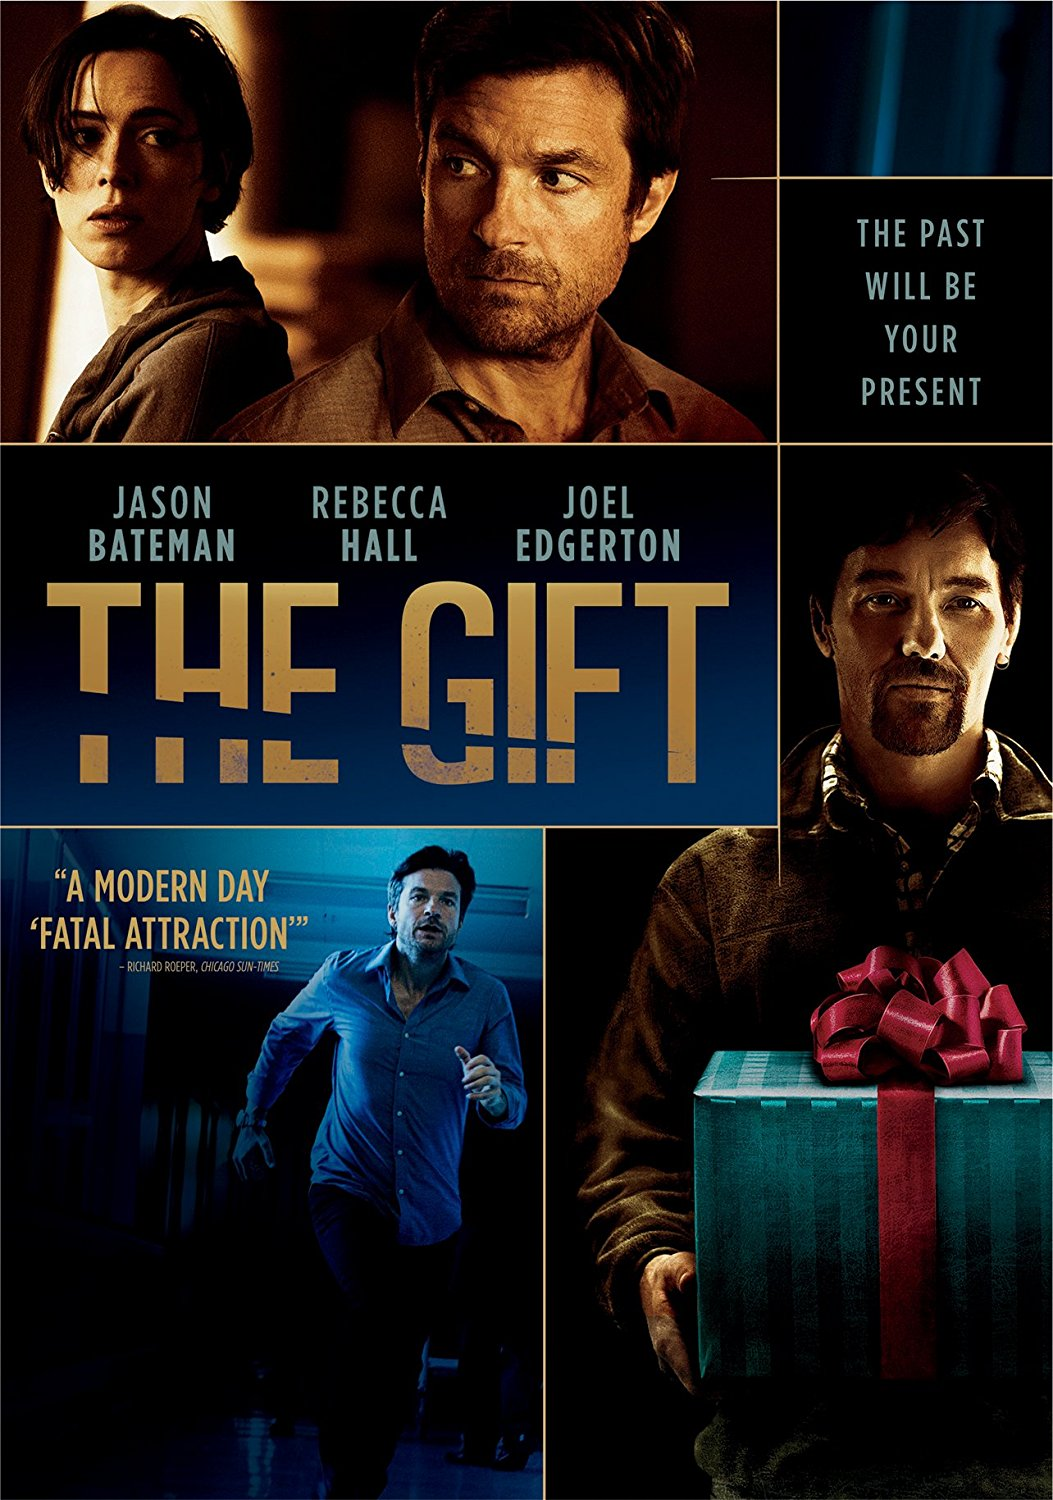 the-gift-movie-poster.jpg